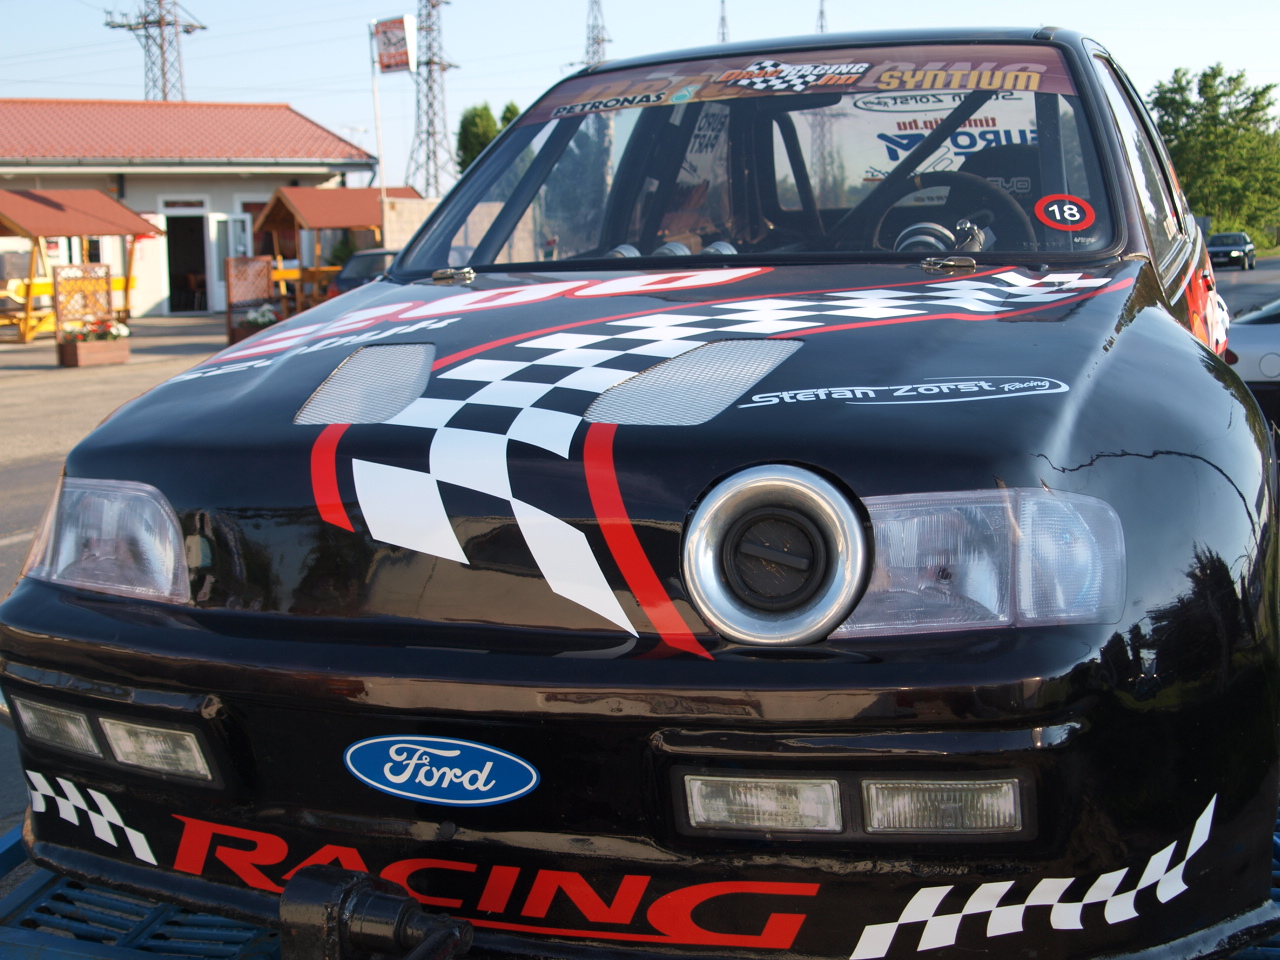 1995  Ford Fiesta Zetec RST picture, mods, upgrades